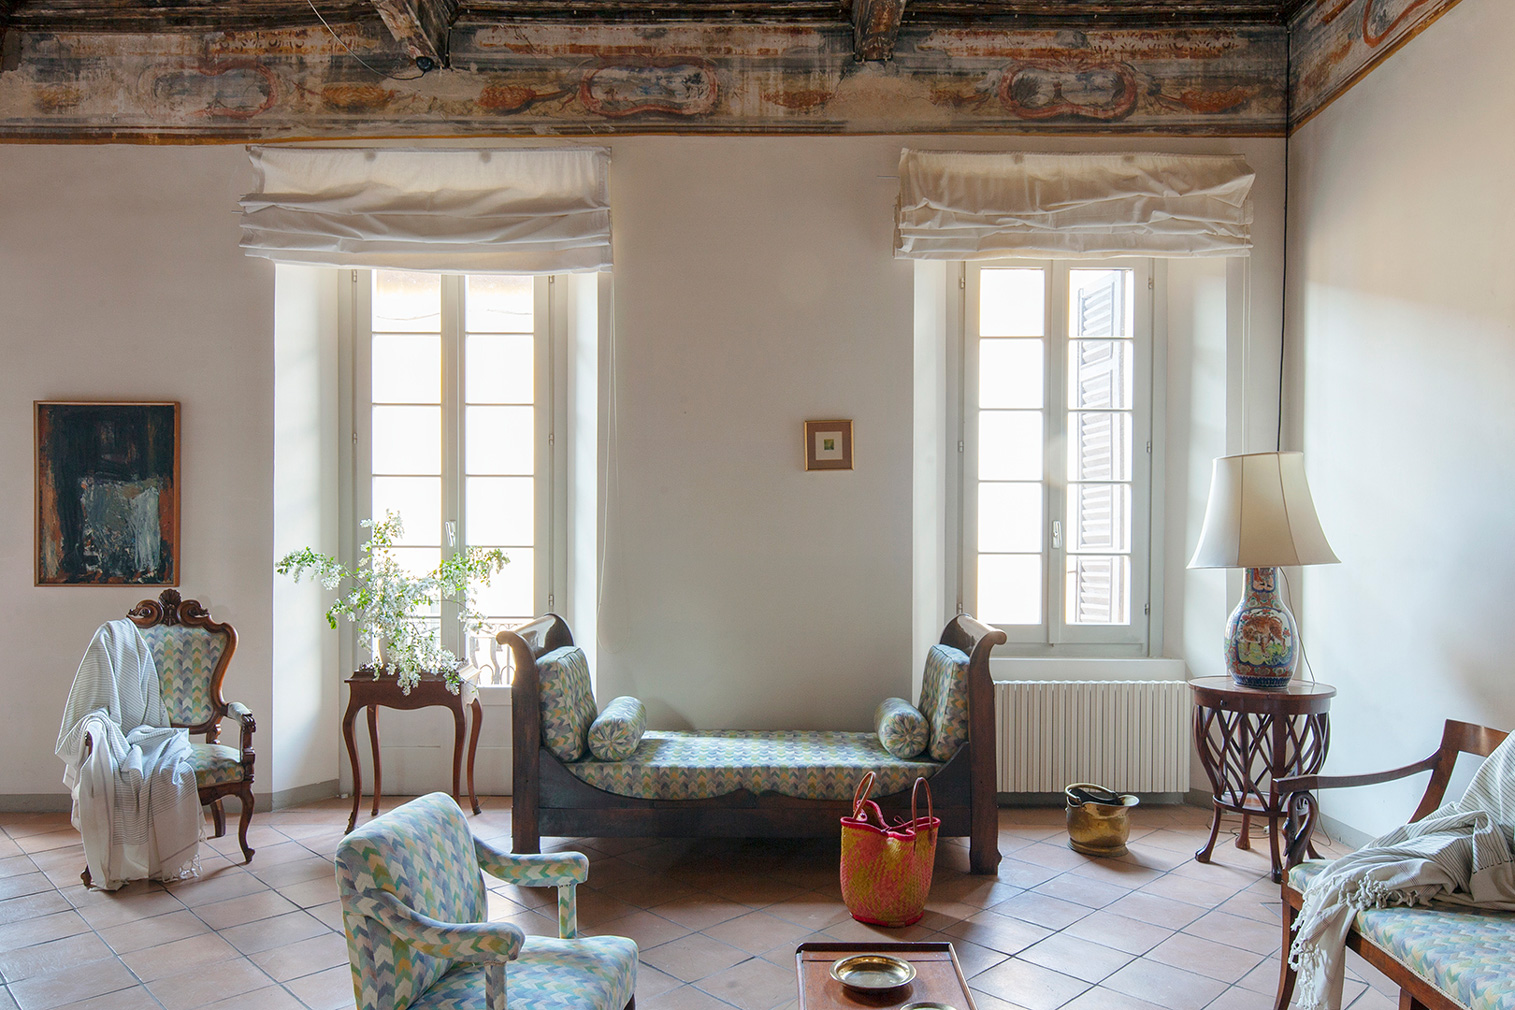 Norwicka took a light decorating and styling the interiors as to blur the line between eras and keep the emphasis on the villa's original selling points